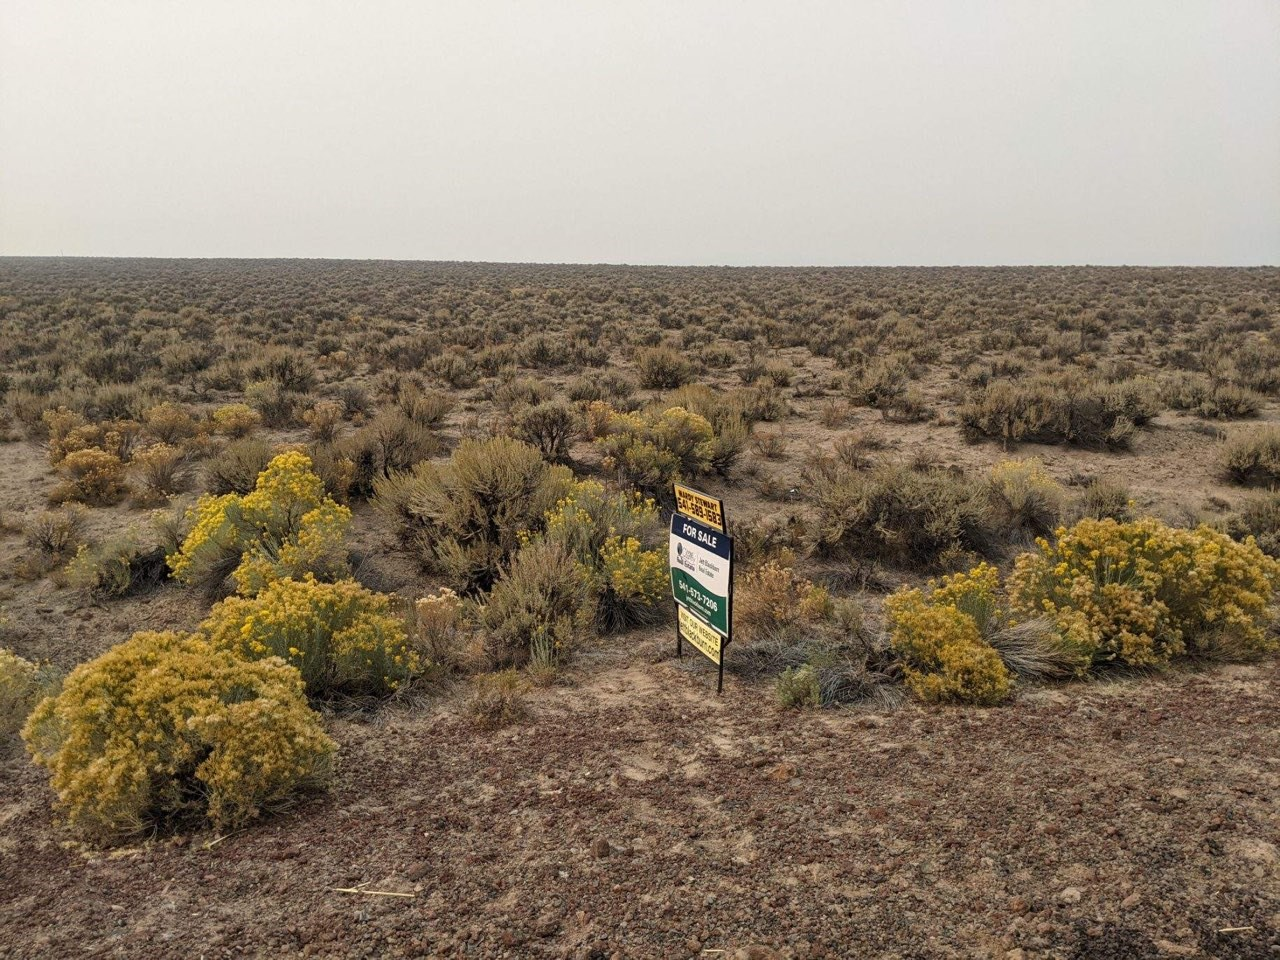 39+/- acres in Brothers, Oregon